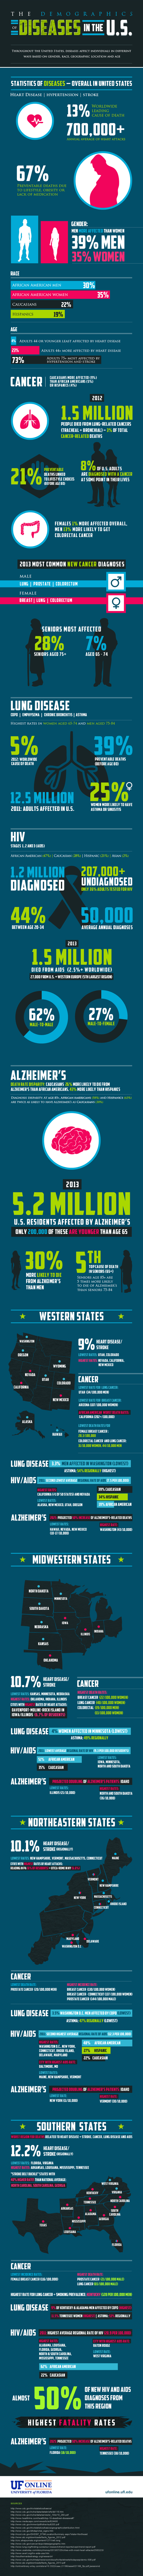 UF Online Infographic: The Demographics of Diseases in the U.S.